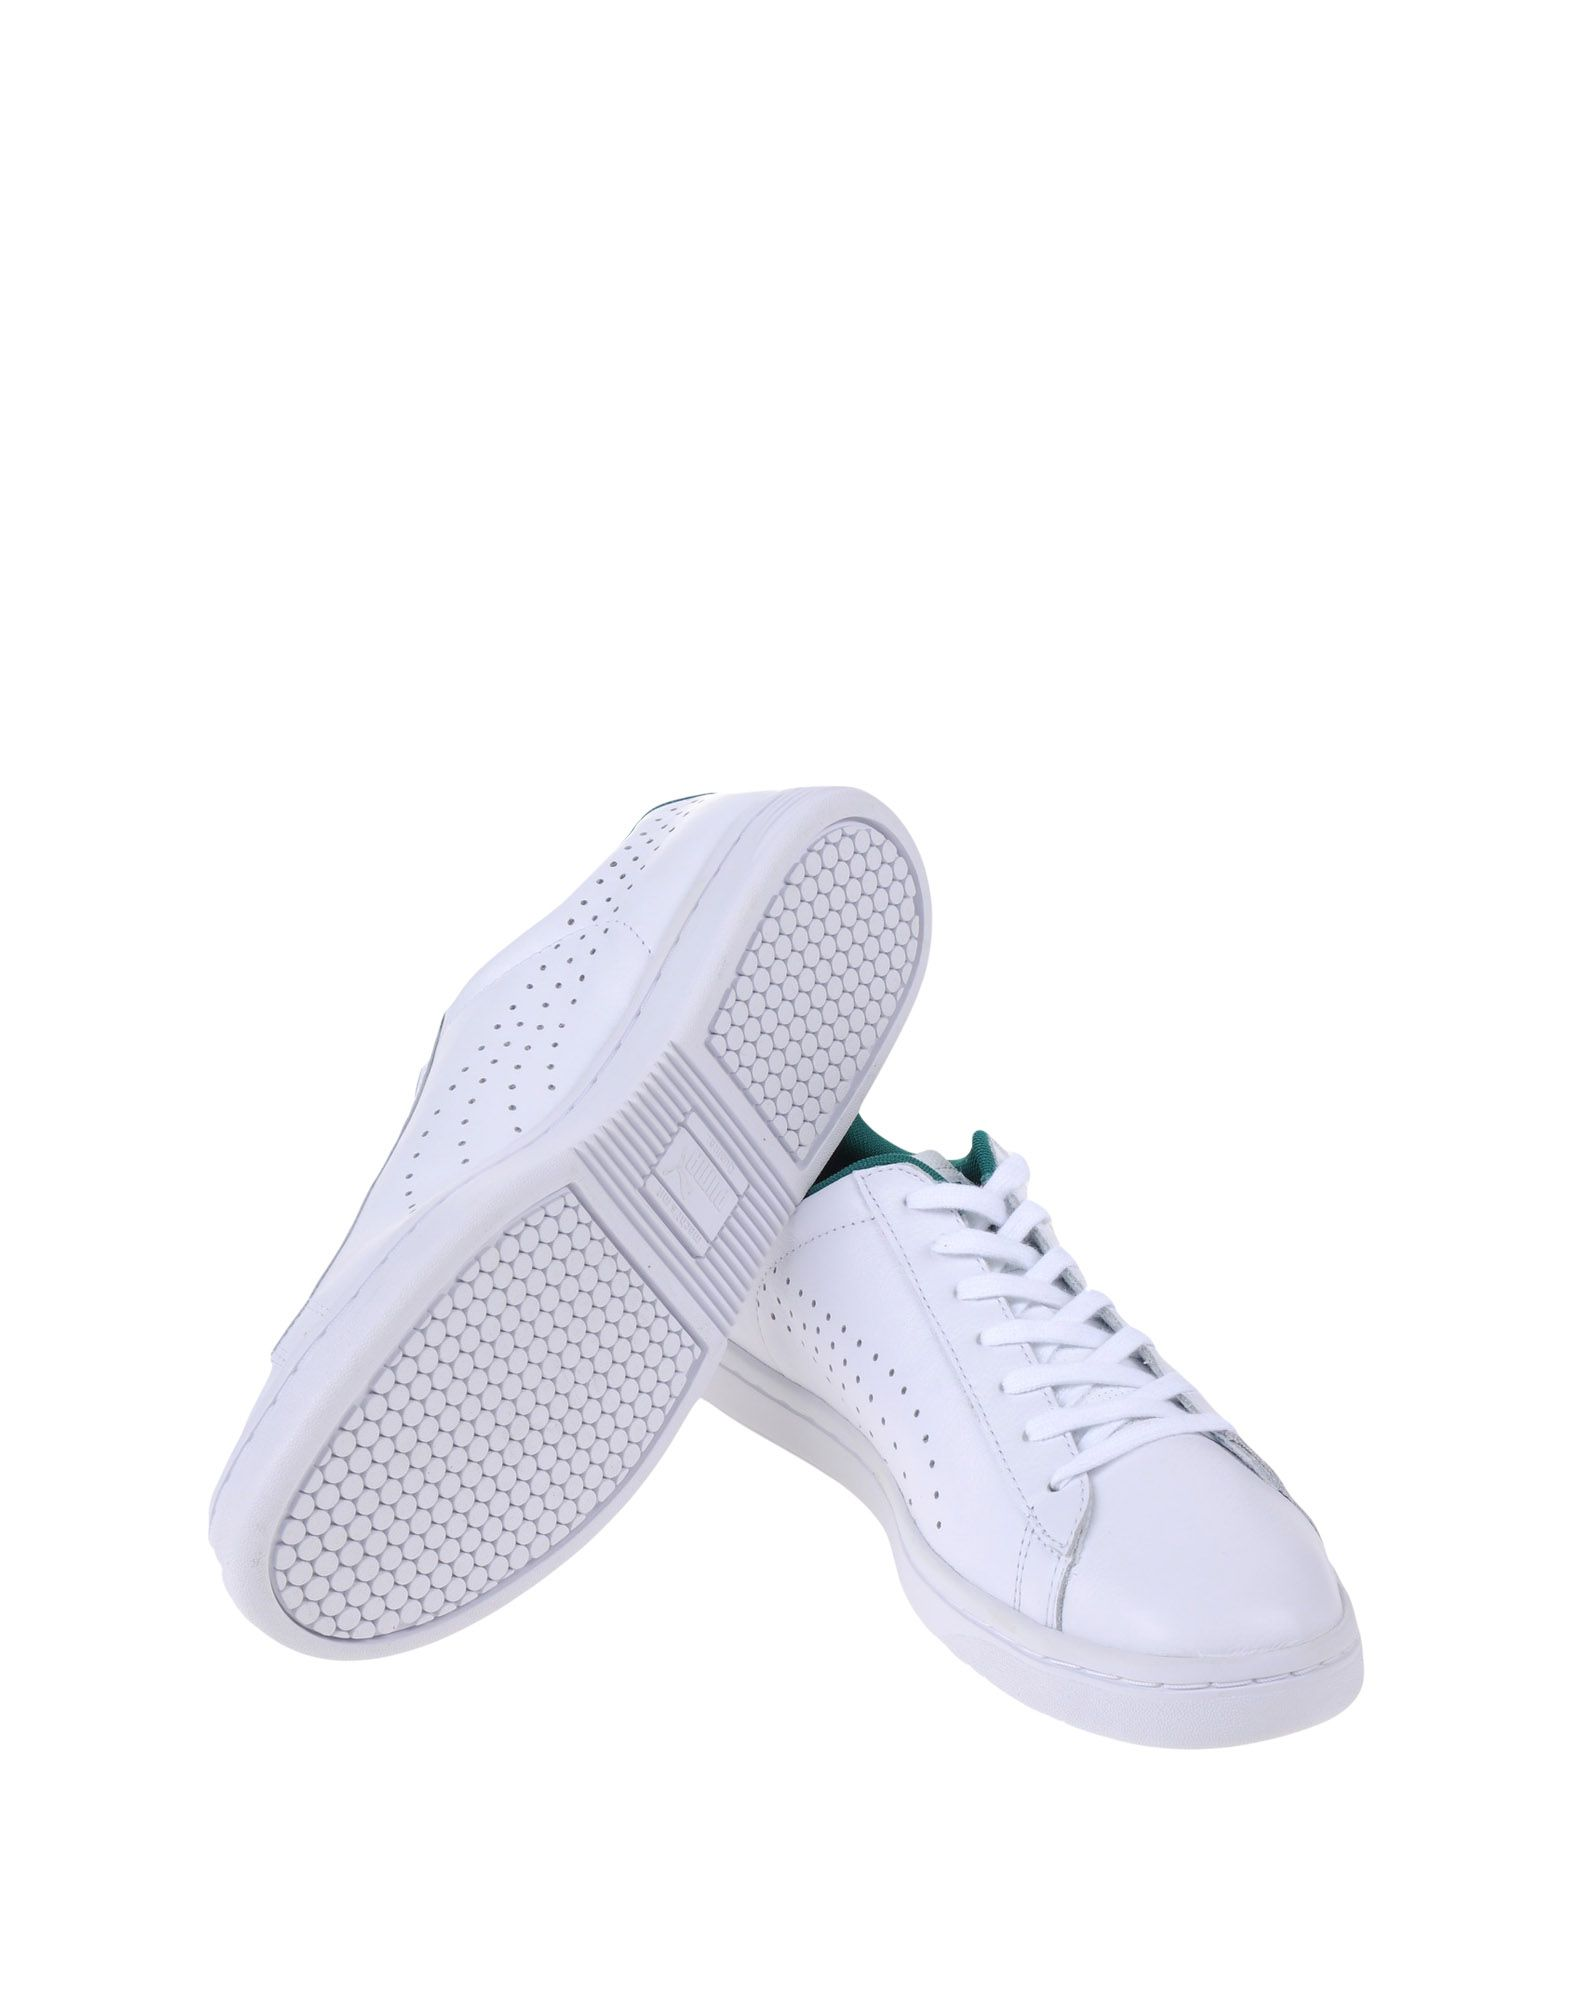 Sneakers Puma 359977-Court Star Crftd - Homme - Sneakers Puma sur